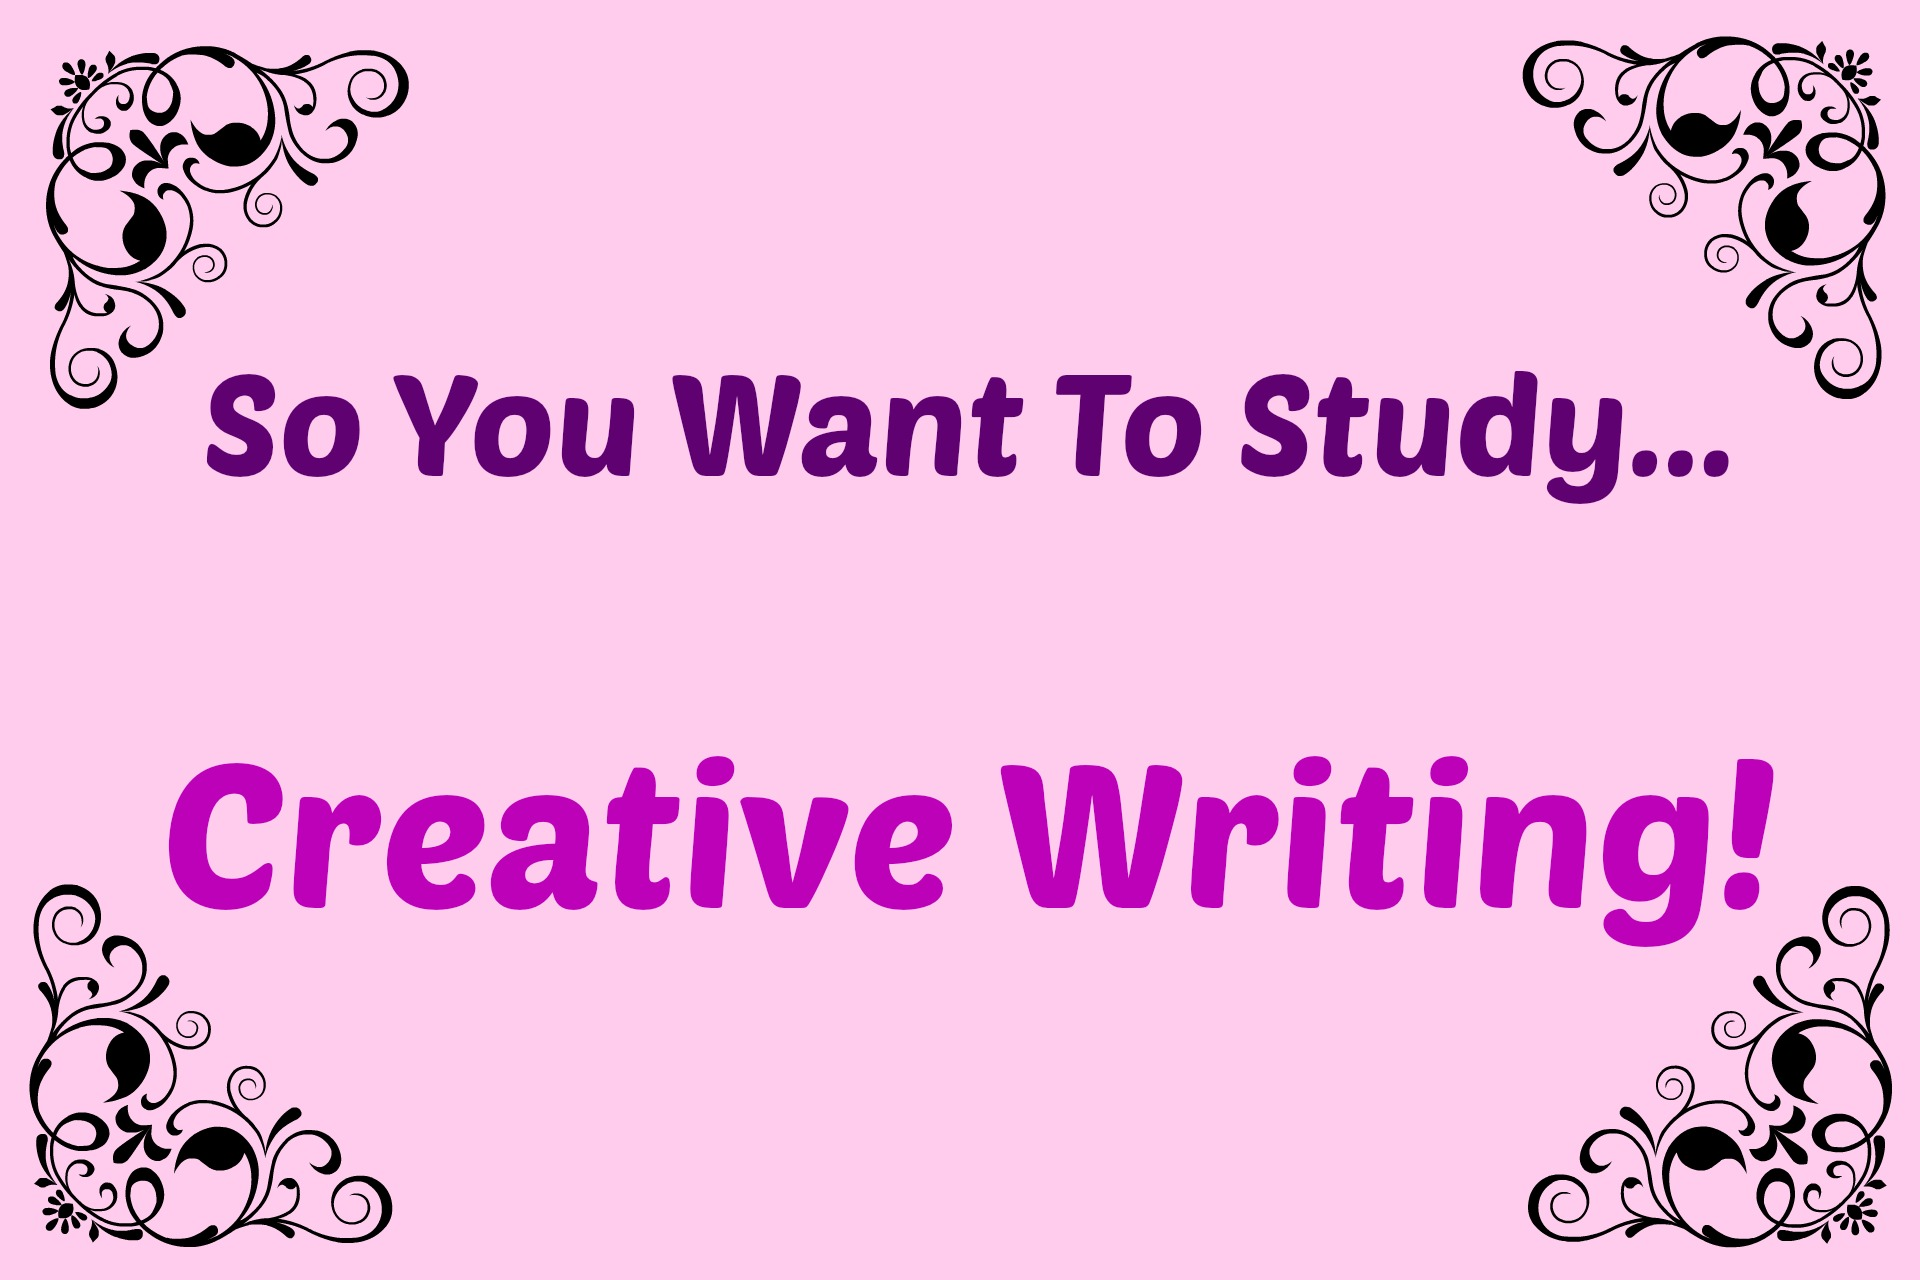 fsu creative writing major requirements Minor in general business overview of the business courses must be completed at florida state university all courses are available to non-majors on a space.